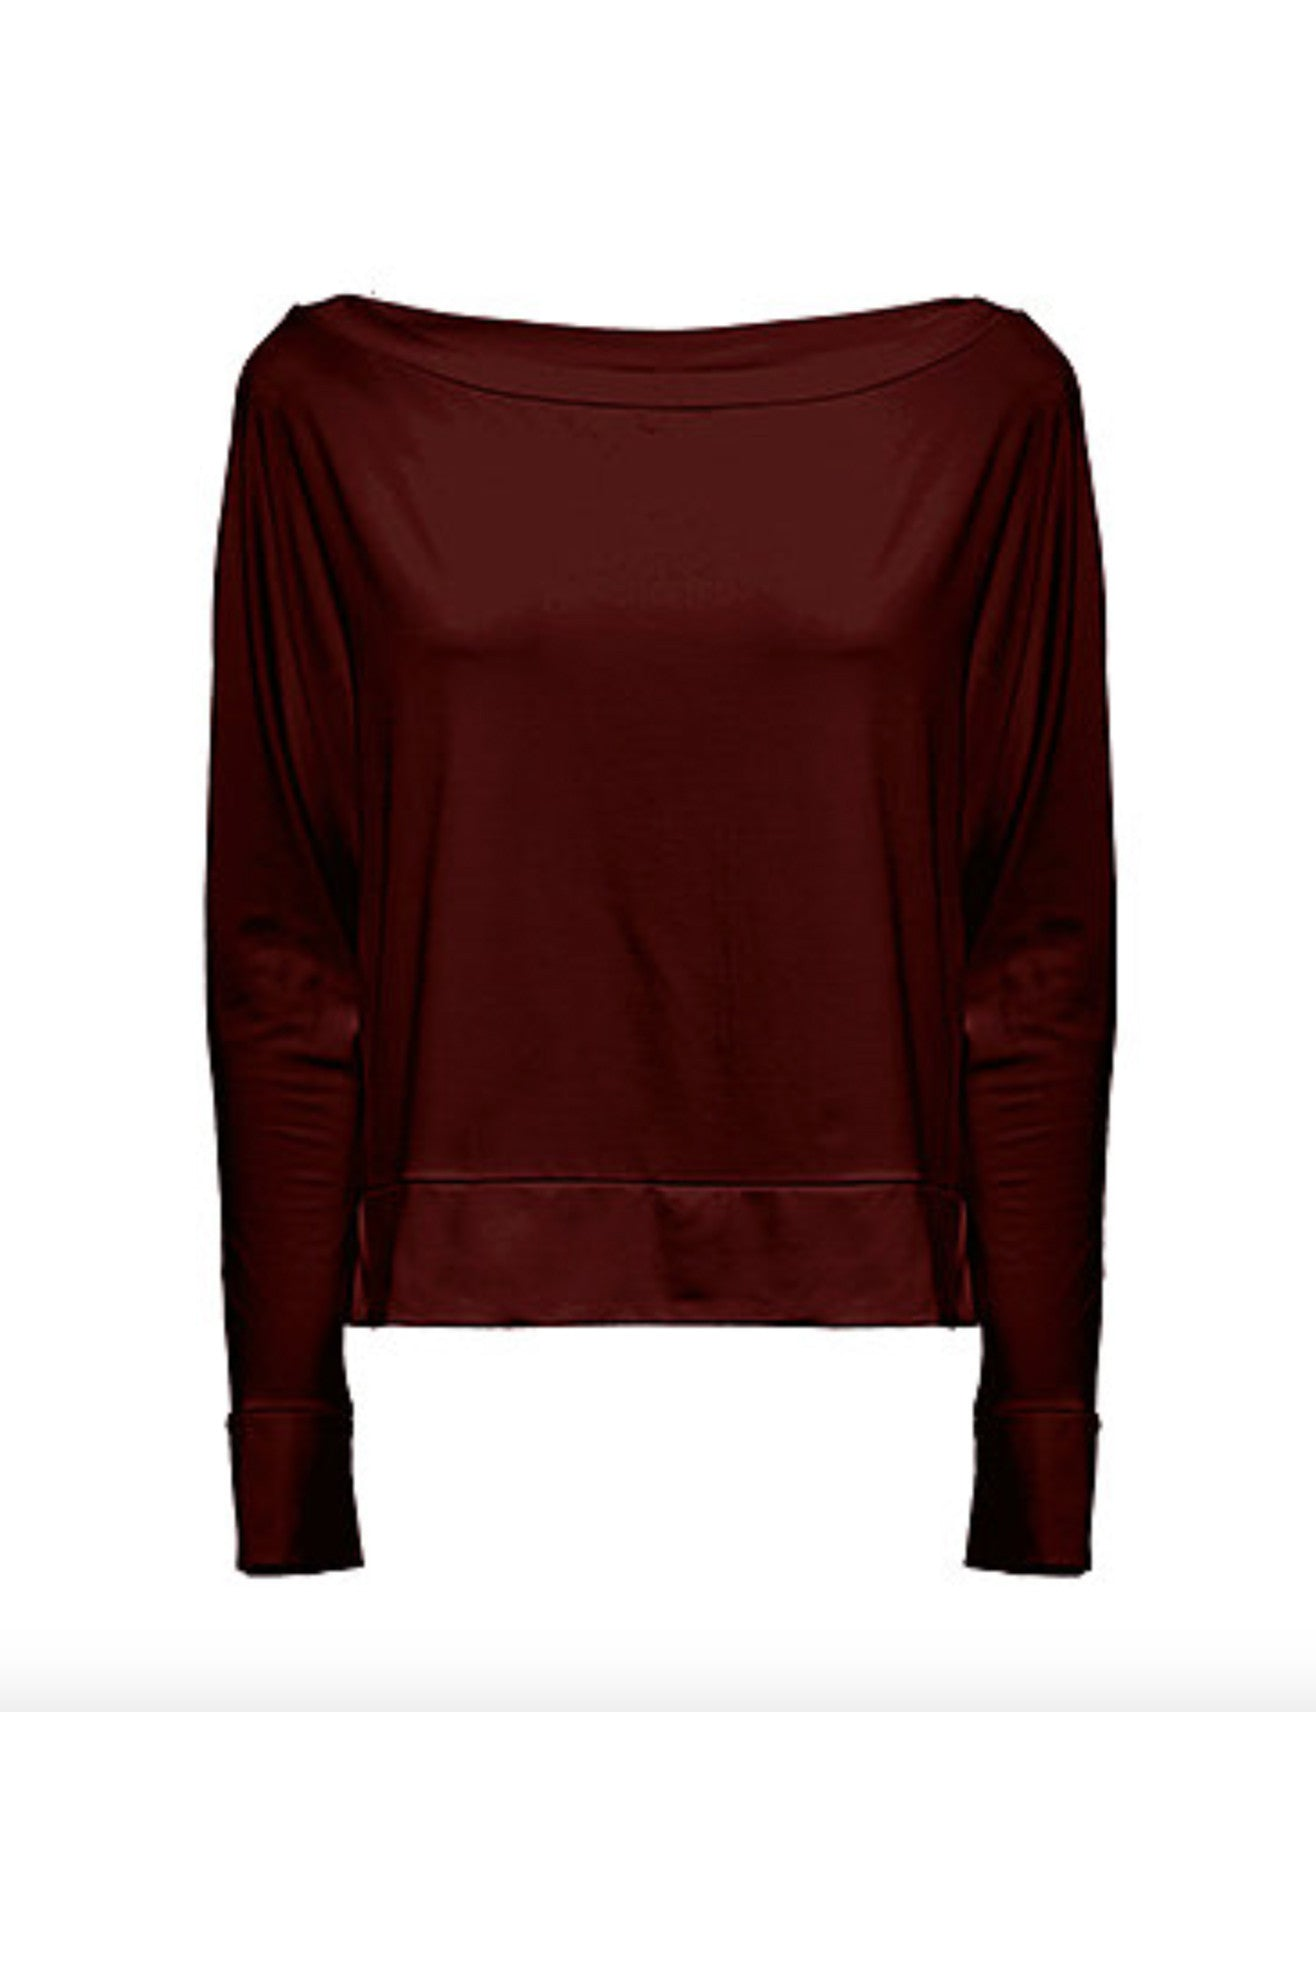 Sakura Melow Top in Marsala, Organic Bamboo knit, comfy and stylish basic, made in Montreal Canada